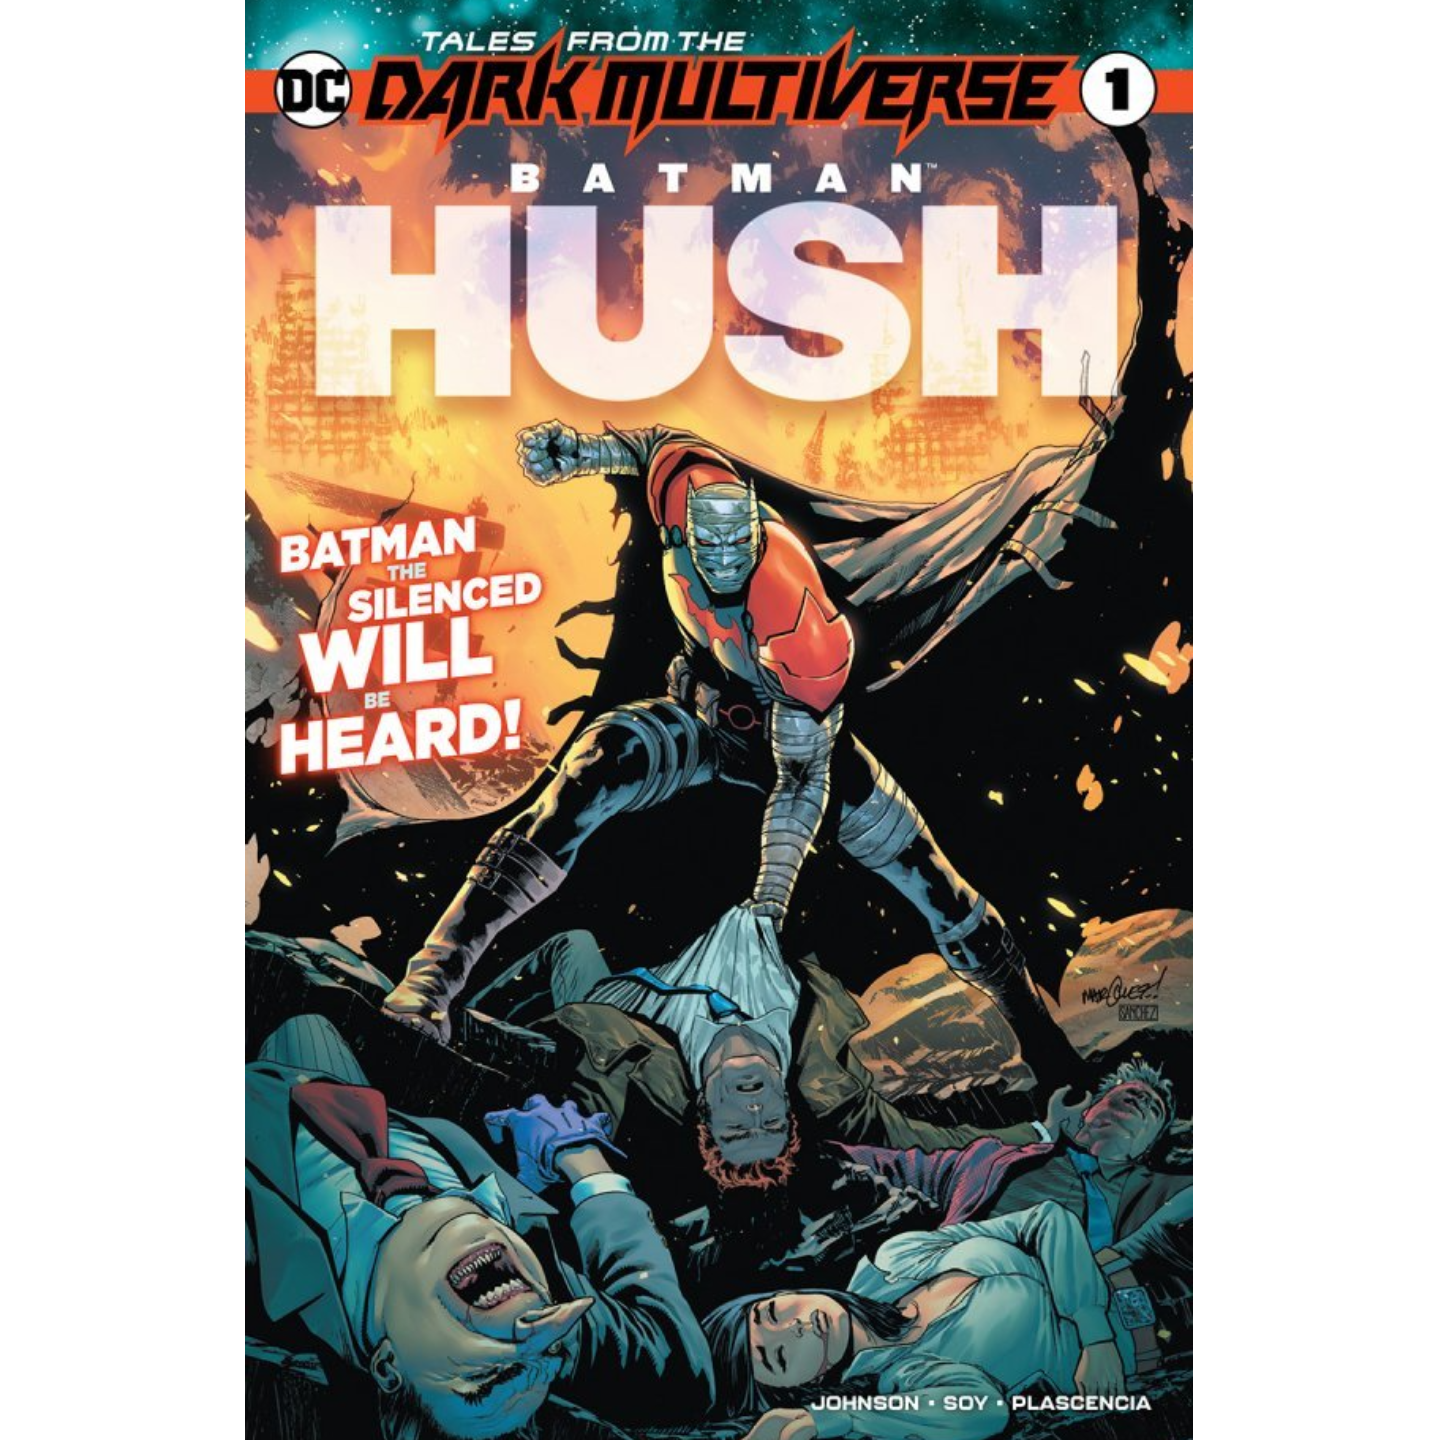 TALES FROM THE DARK MULTIVERSE BATMAN HUSH #1 (ONE SHOT)